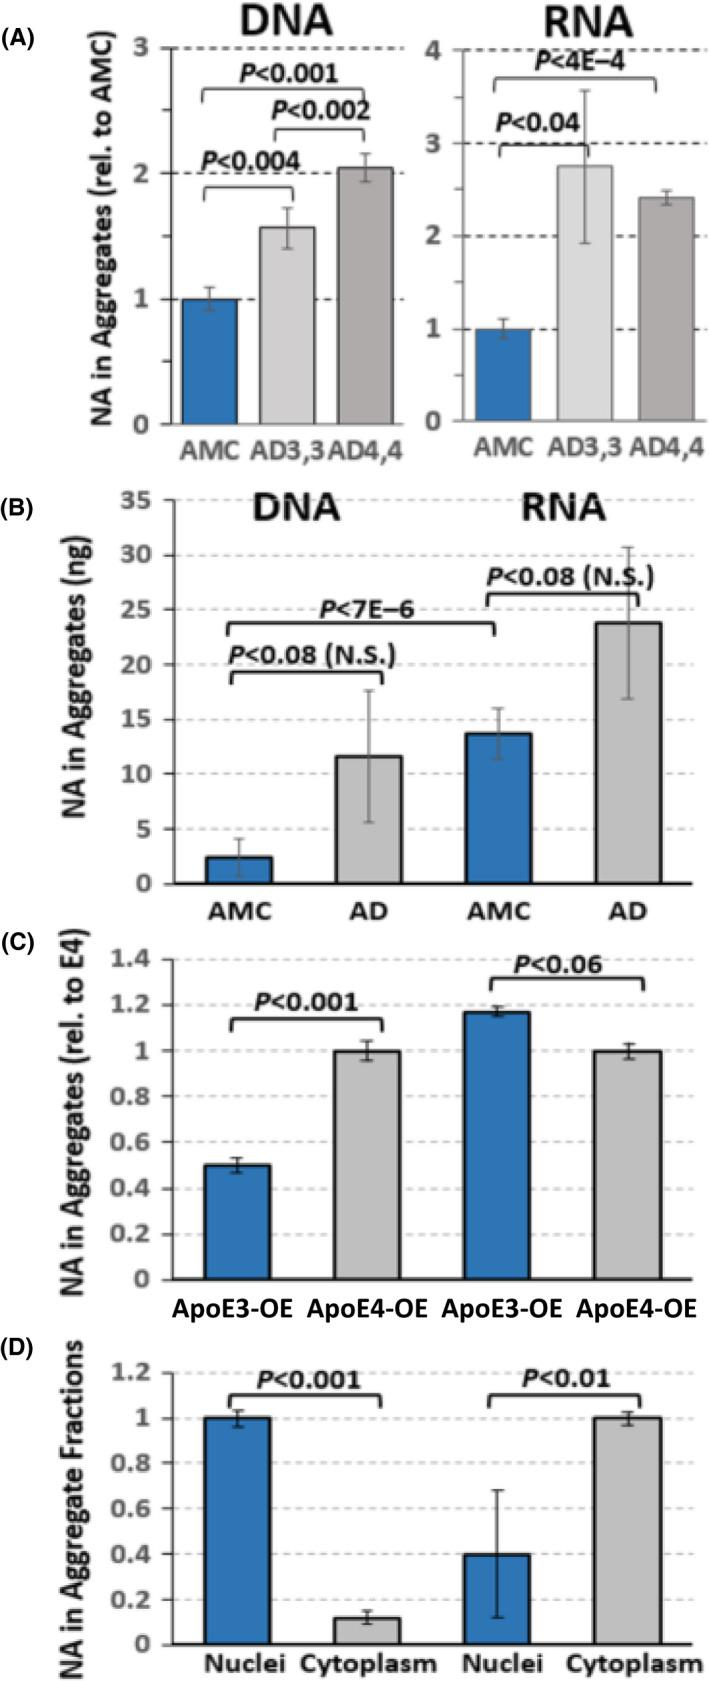 Recovery of <t>DNA</t> and <t>RNA</t> from aggregates. DNA and RNA were extracted and quantified from insoluble aggregates, isolated from hippocampi of AMC (APOE ε3/ε3), or AD (ε3/ε3 or ε4/ε4) individuals (A, each N = 3); or from similar mixes of APOE ε3/ε3 and ε3/ε4 individuals (B, each N = 5–6). (C, D) DNA and RNA were extracted from insoluble aggregates from T98G glioma cells. C, independent cultures of T98G cells overexpressing APOE ε3 from a transgene were compared to cultures expressing ε4. D, T98G cells without any transgene were lysed in 0.5% NP40, and nuclei separated from cytoplasm. DNA was chiefly associated with nuclear aggregates, and RNA with cytoplasmic aggregates, as expected. Means ±SDs are shown. p values reflect 2‐tailed heteroscedastic t tests.